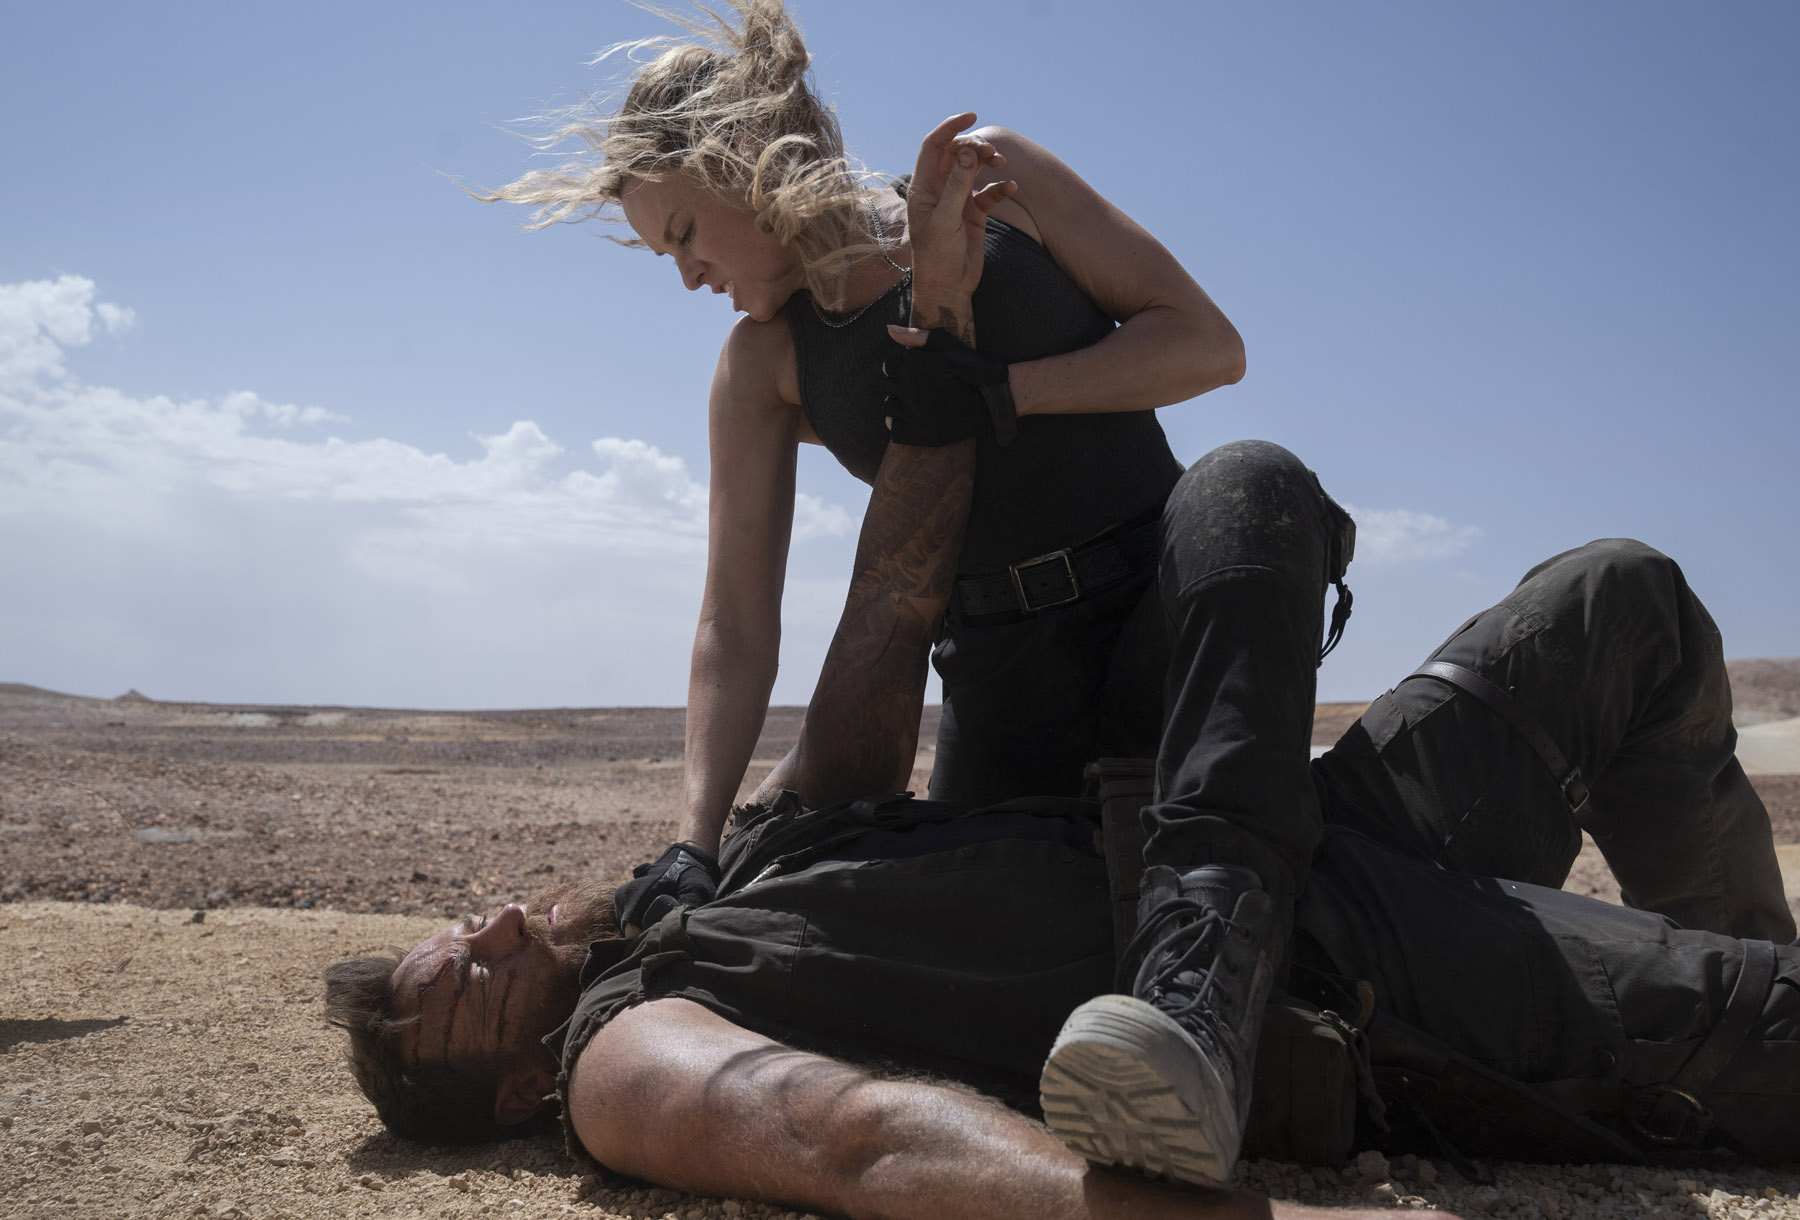 """(L-r) JOSH LAWSON as Kano and JESSICA MCNAMEE as Sonya Blade in New Line Cinema's action adventure """"Mortal Kombat,"""" a Warner Bros. Pictures release."""